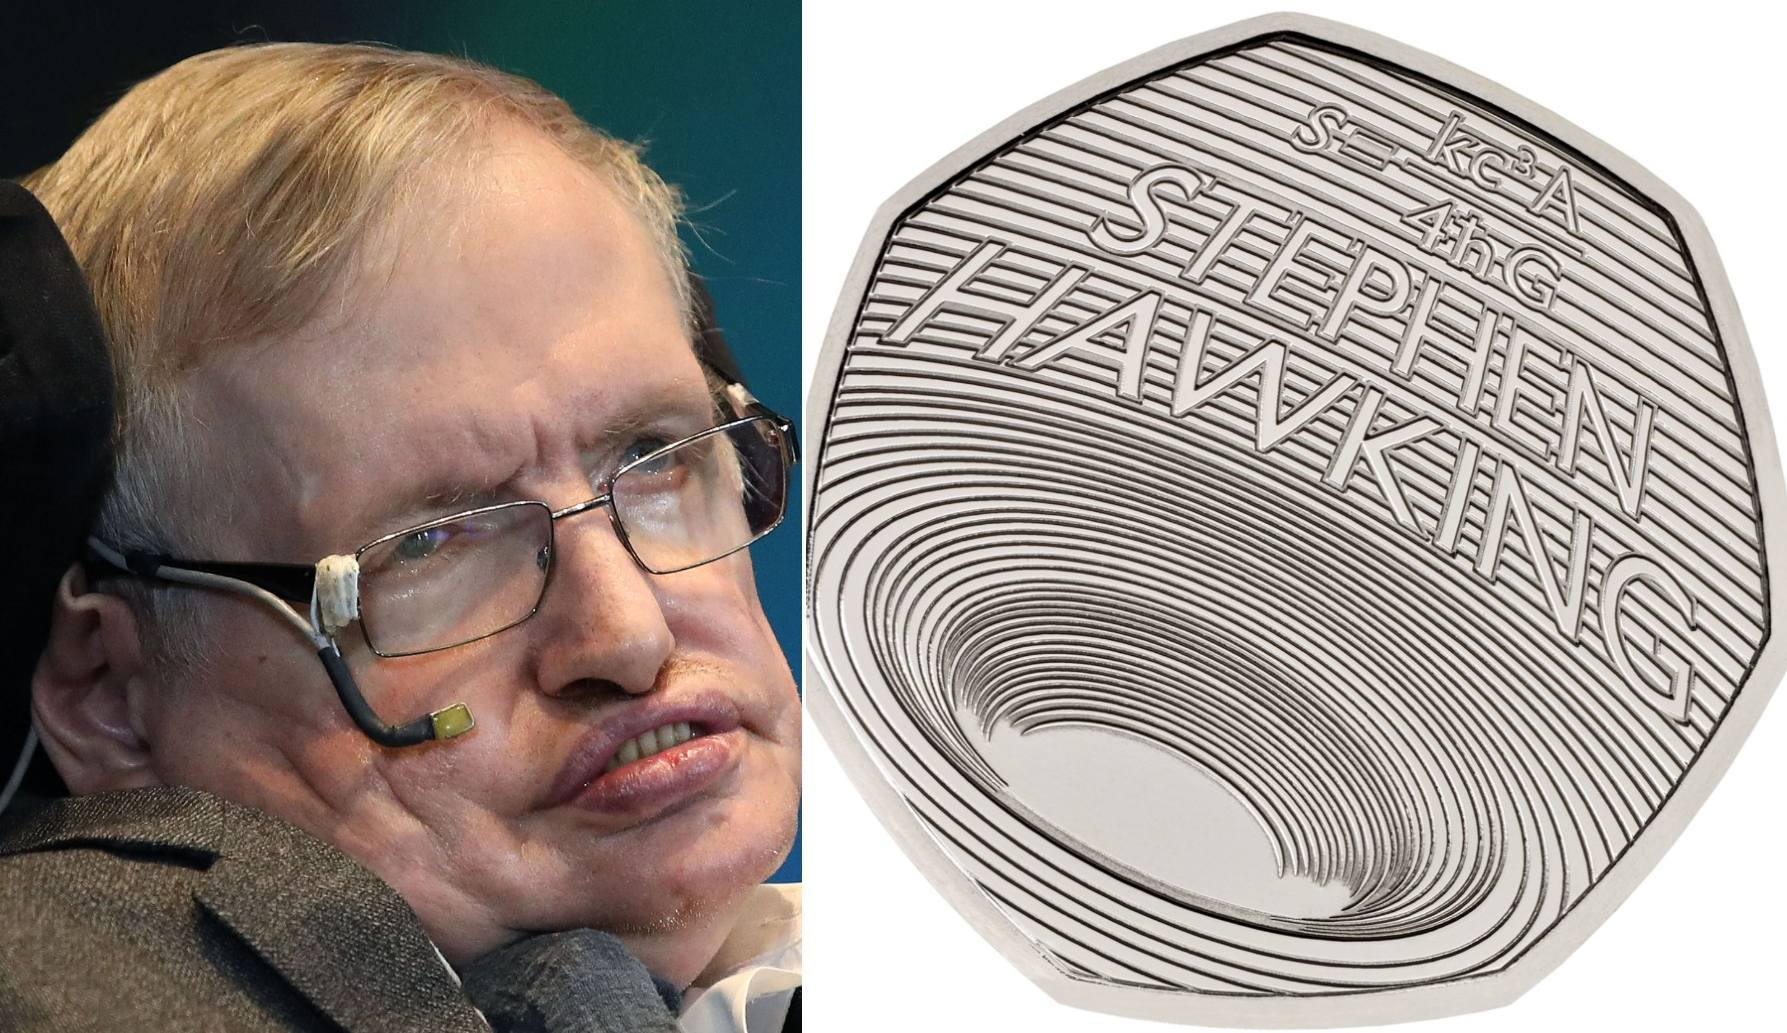 Stephen Hawking has been commemorated on a new 50p coin